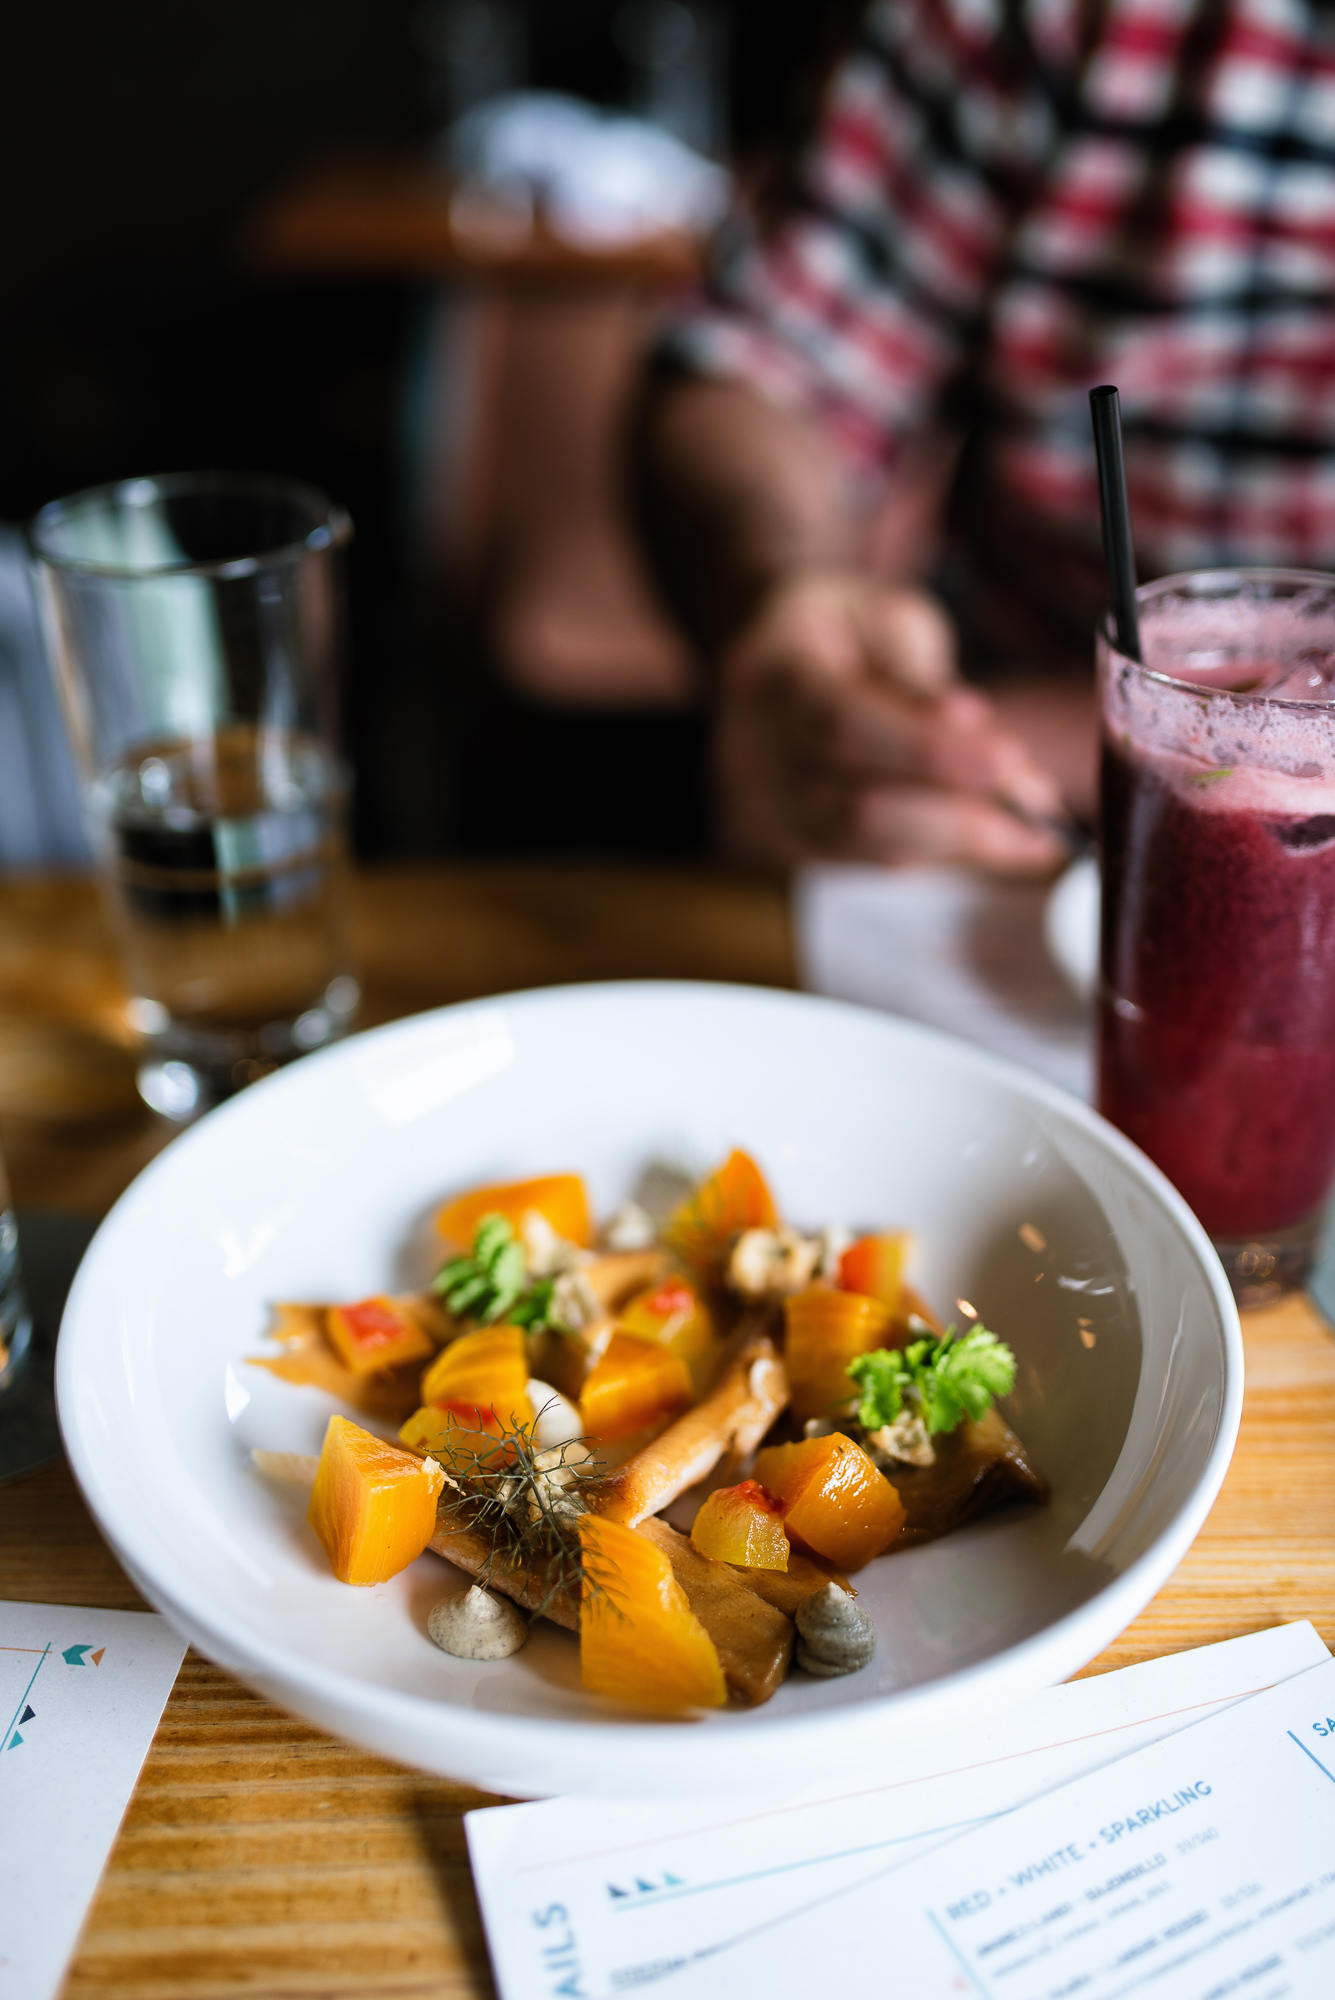 Beets - smoked trout, miso, pickled watermelon rind